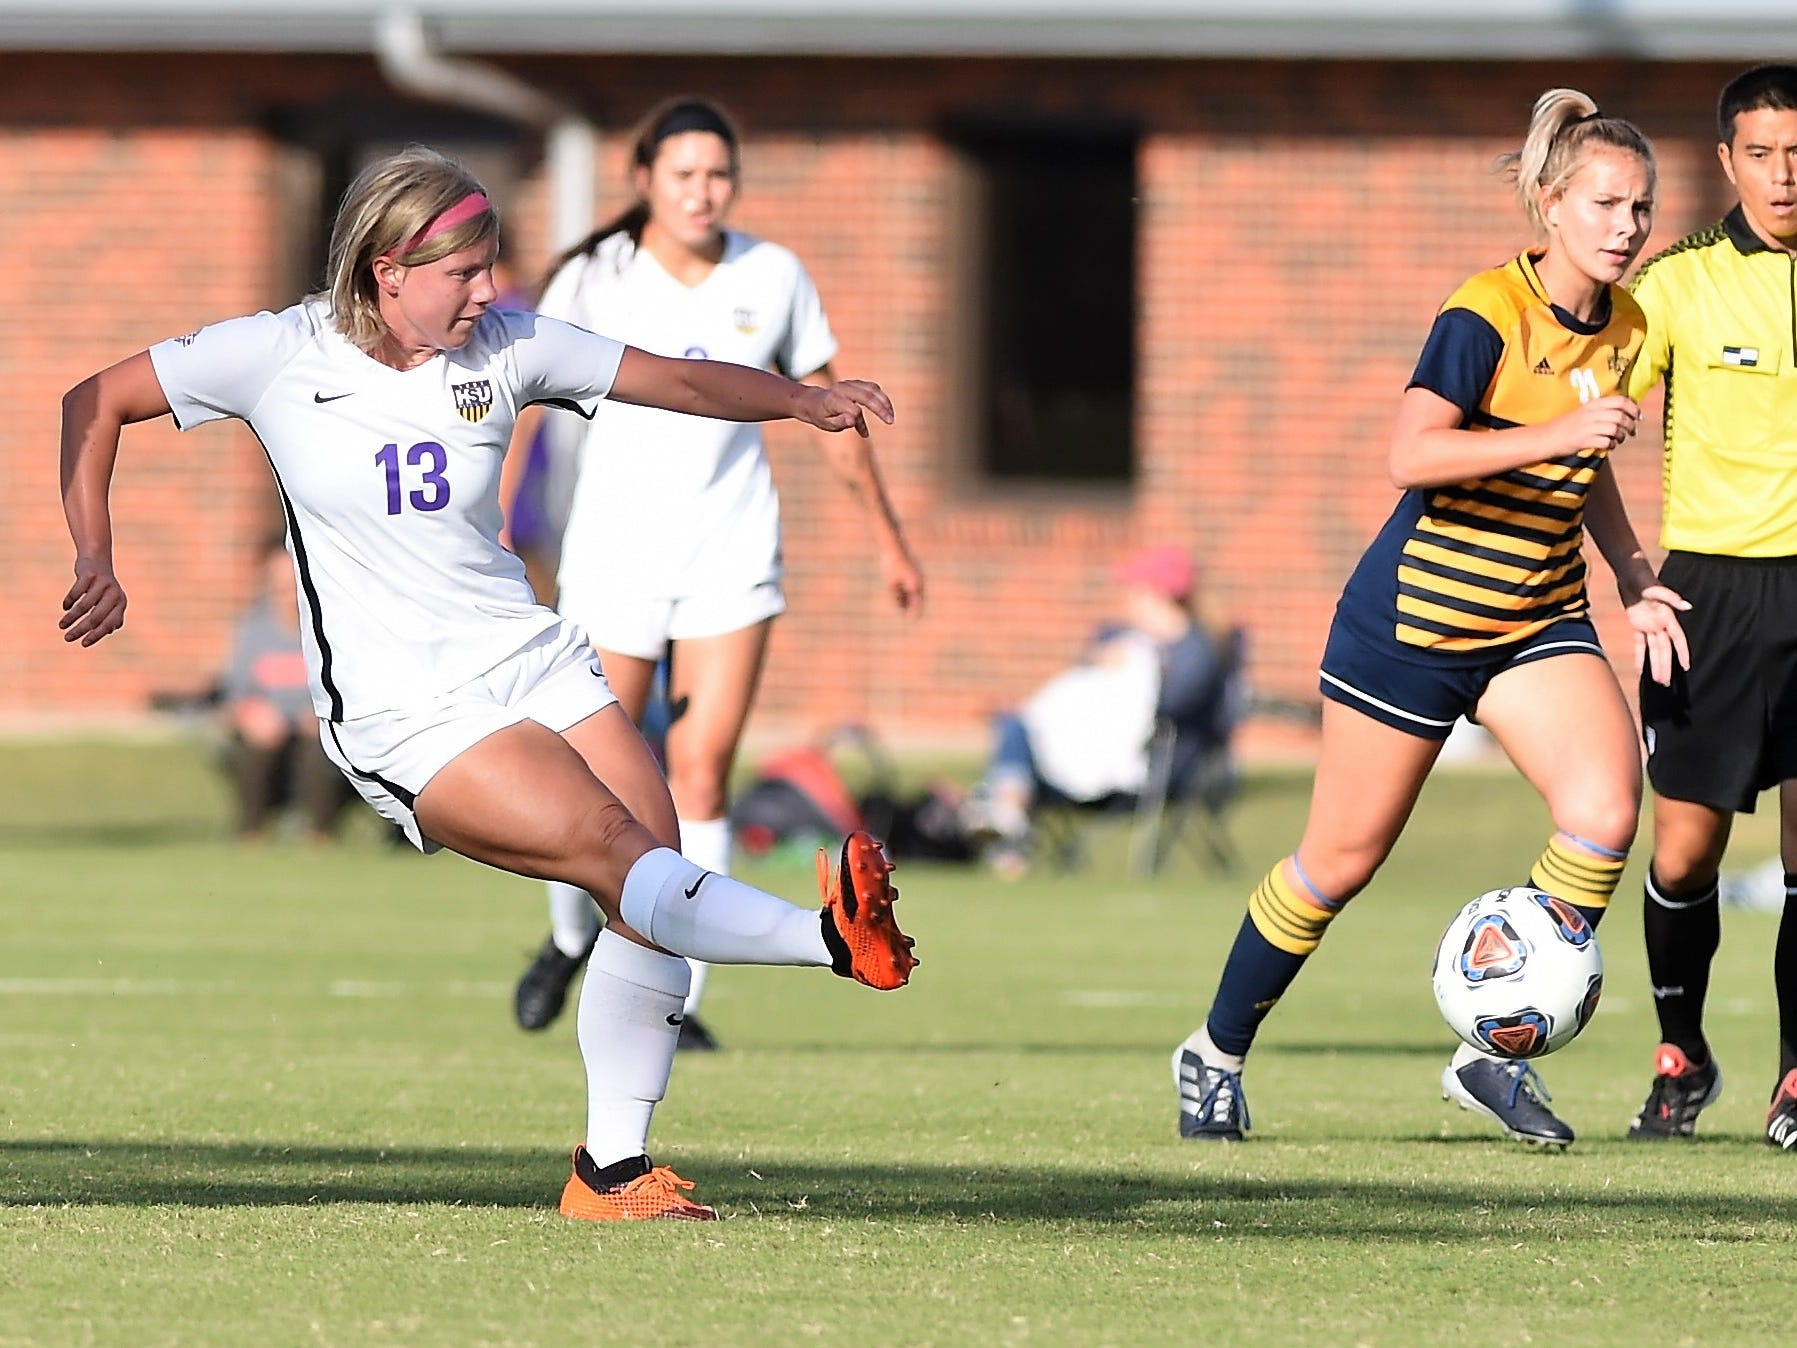 Hardin-Simmons midfielder Josey Meyer (13) passes into the box at the HSU Soccer Complex on Thursday, Oct. 11, 2018. The Cowgirls won 4-1.